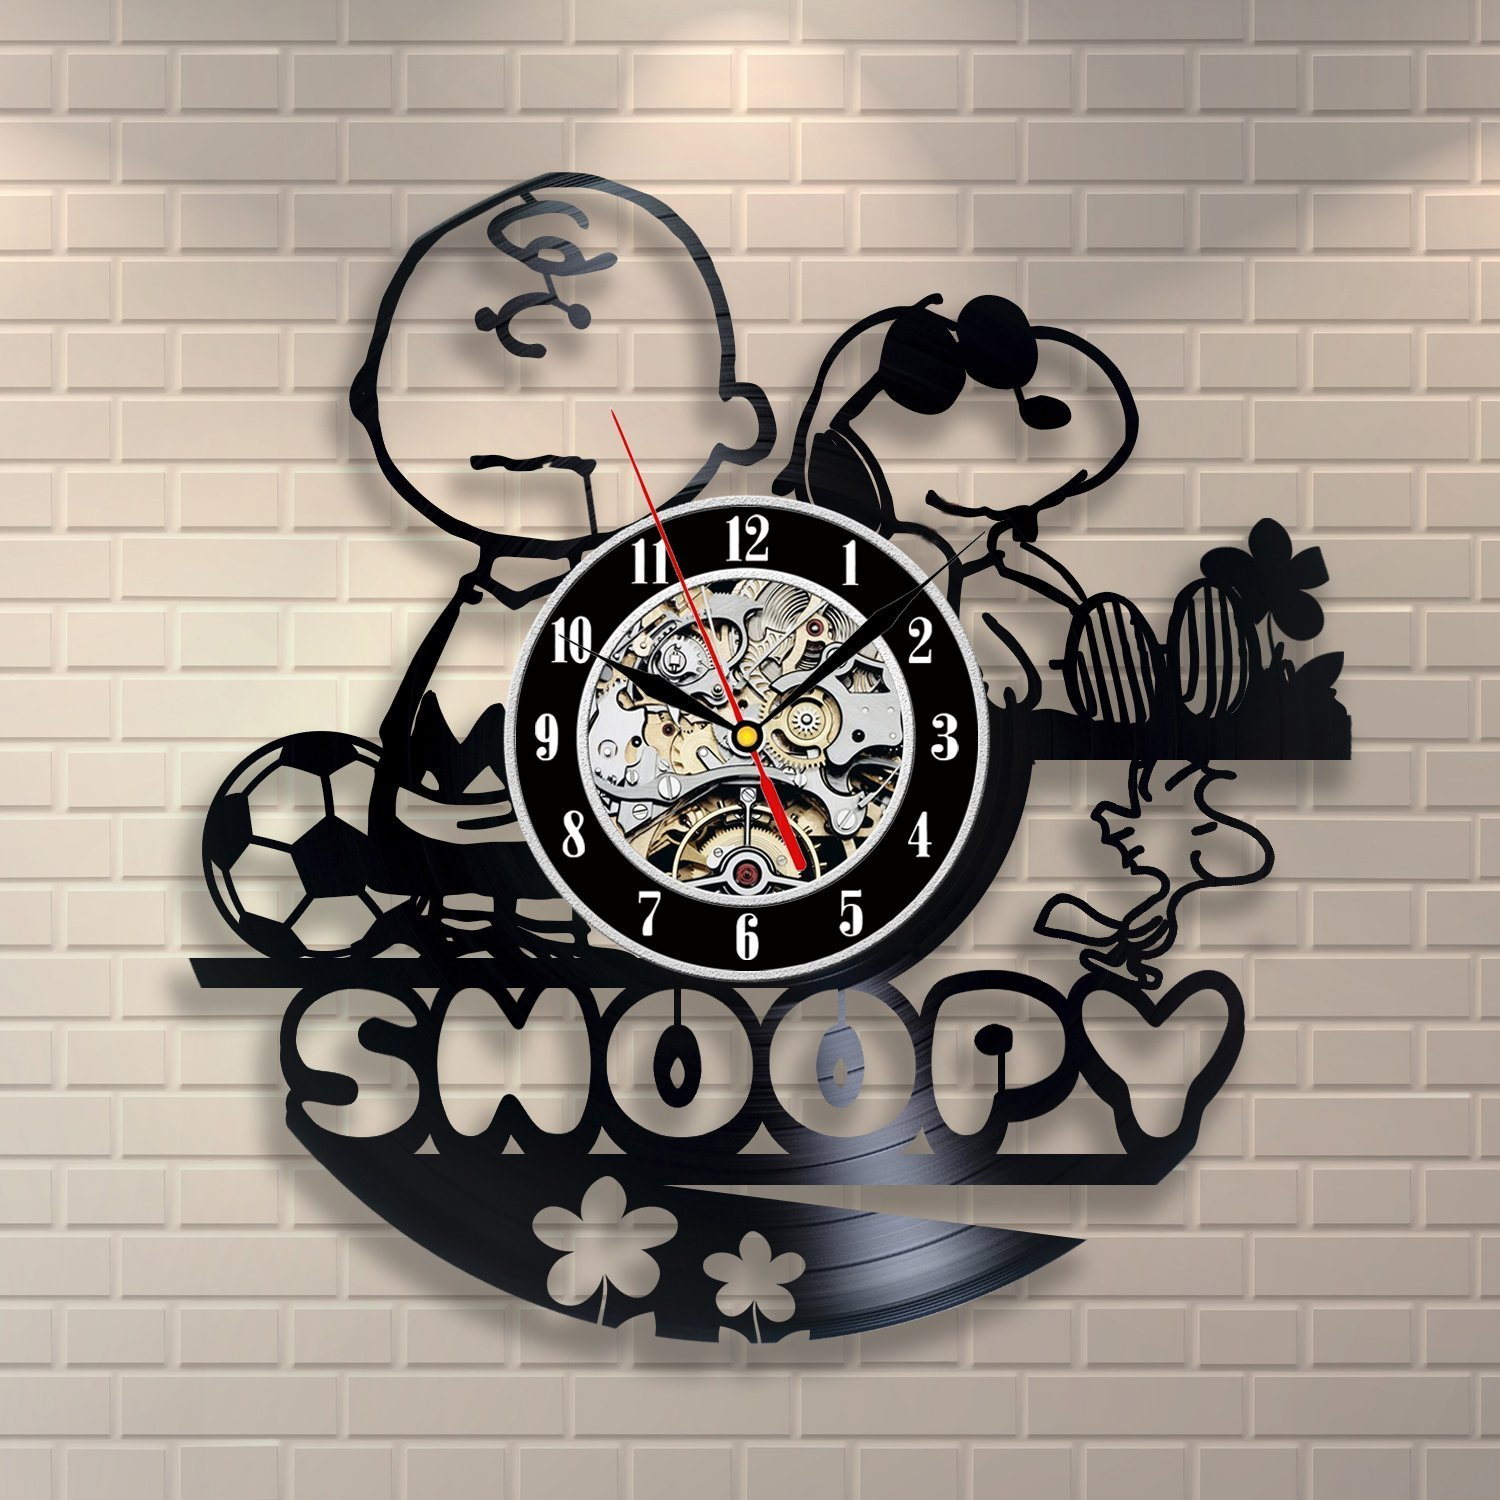 Snoopy Vintage Office Decor Vinyl Record Wall Clock Wedding Win a prize for feedback B01D8KBGP6